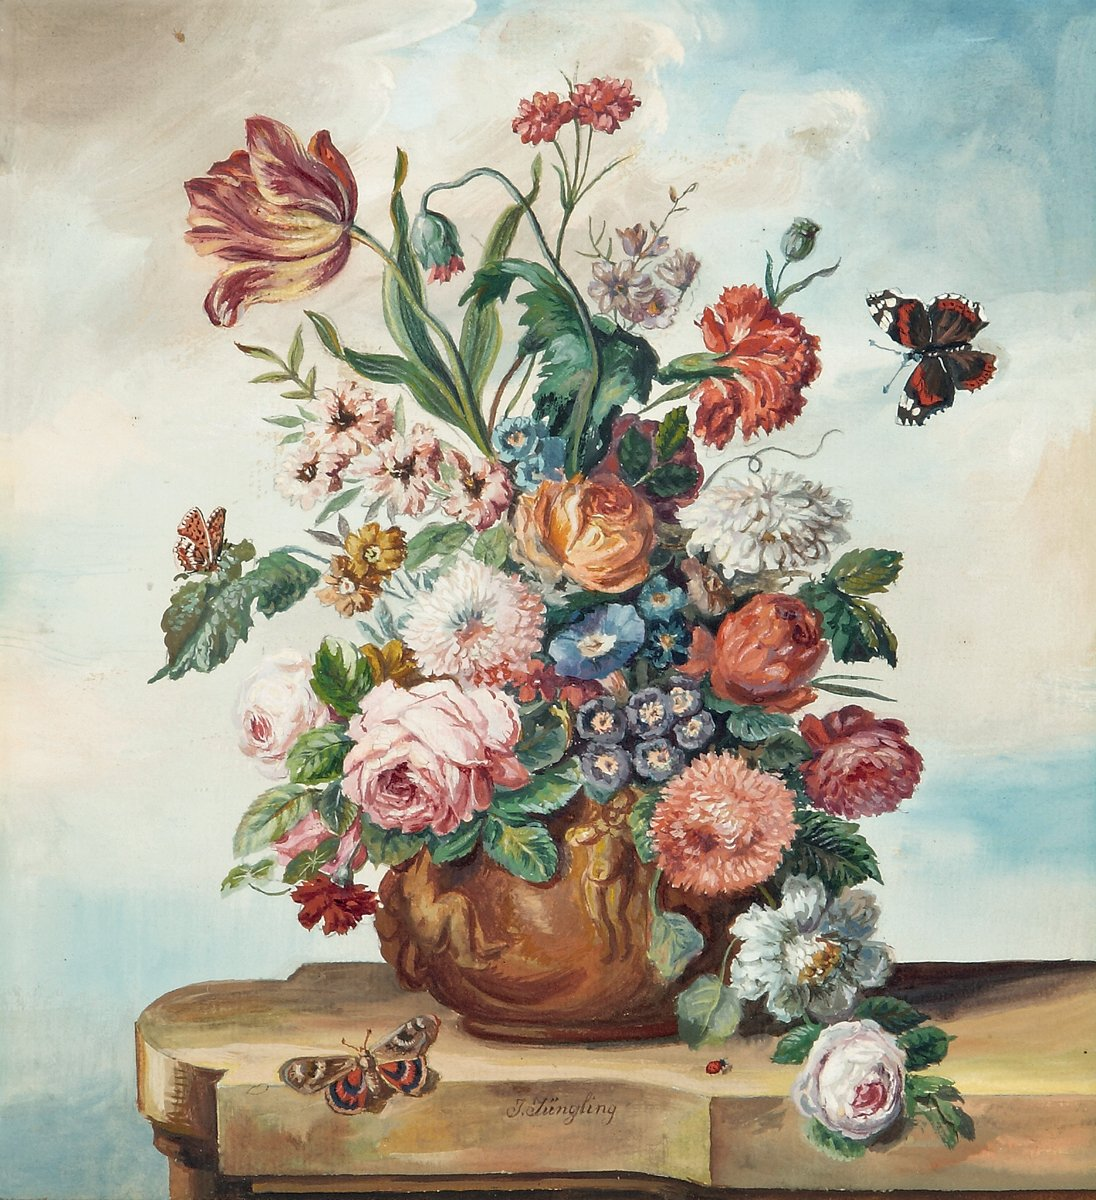 A Floral Still Life on a Ledge with Butterflies